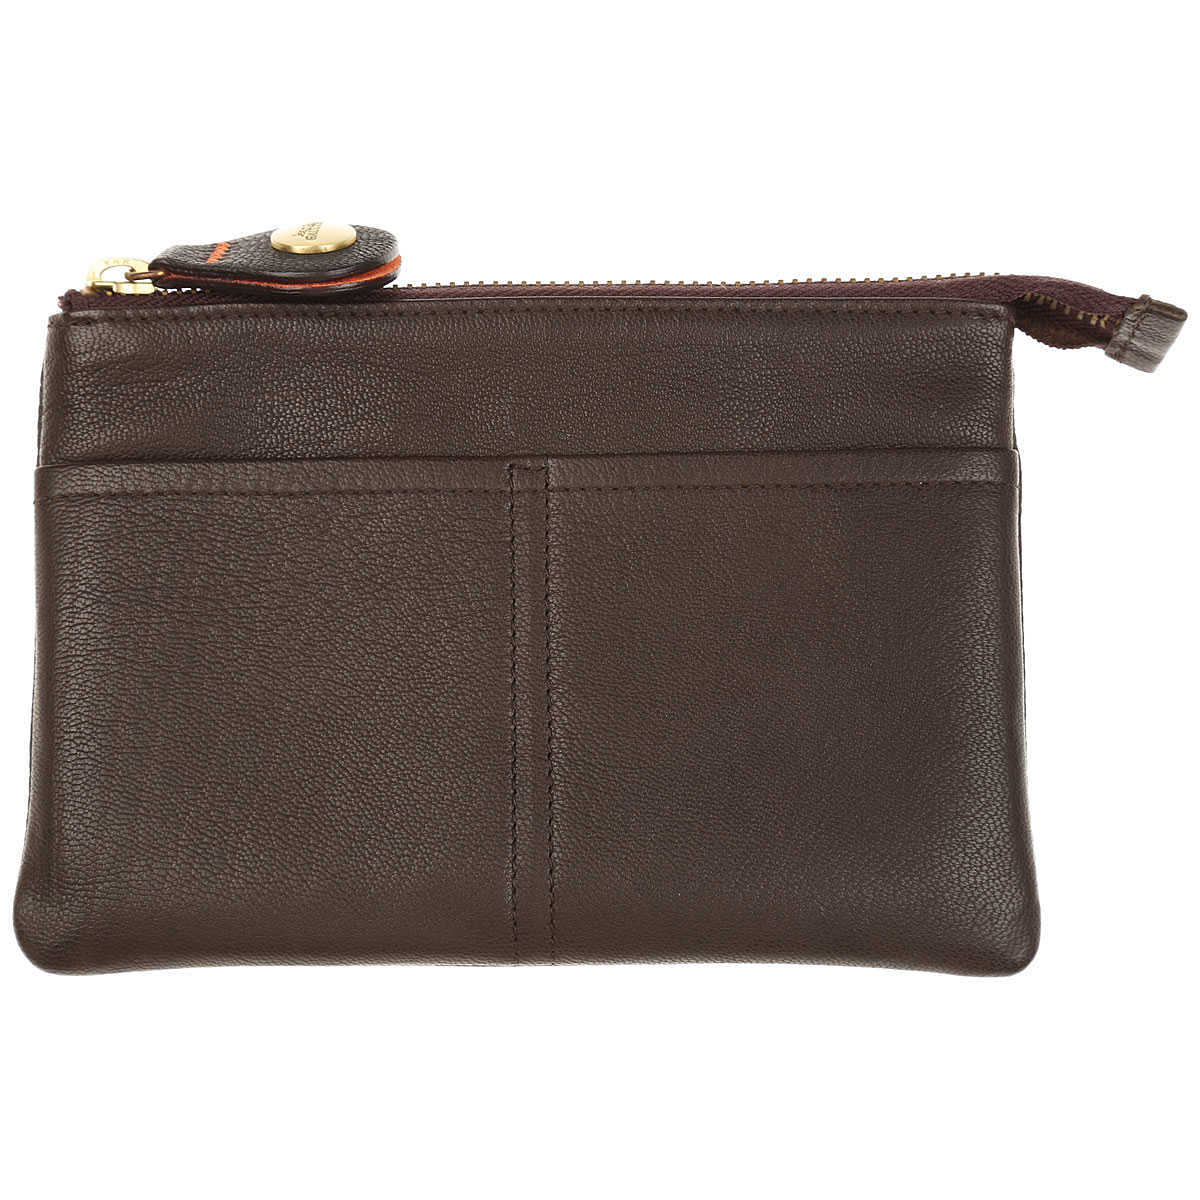 J.P. Gaultier Wallet for Men On Sale Dark Brown - GOOFASH